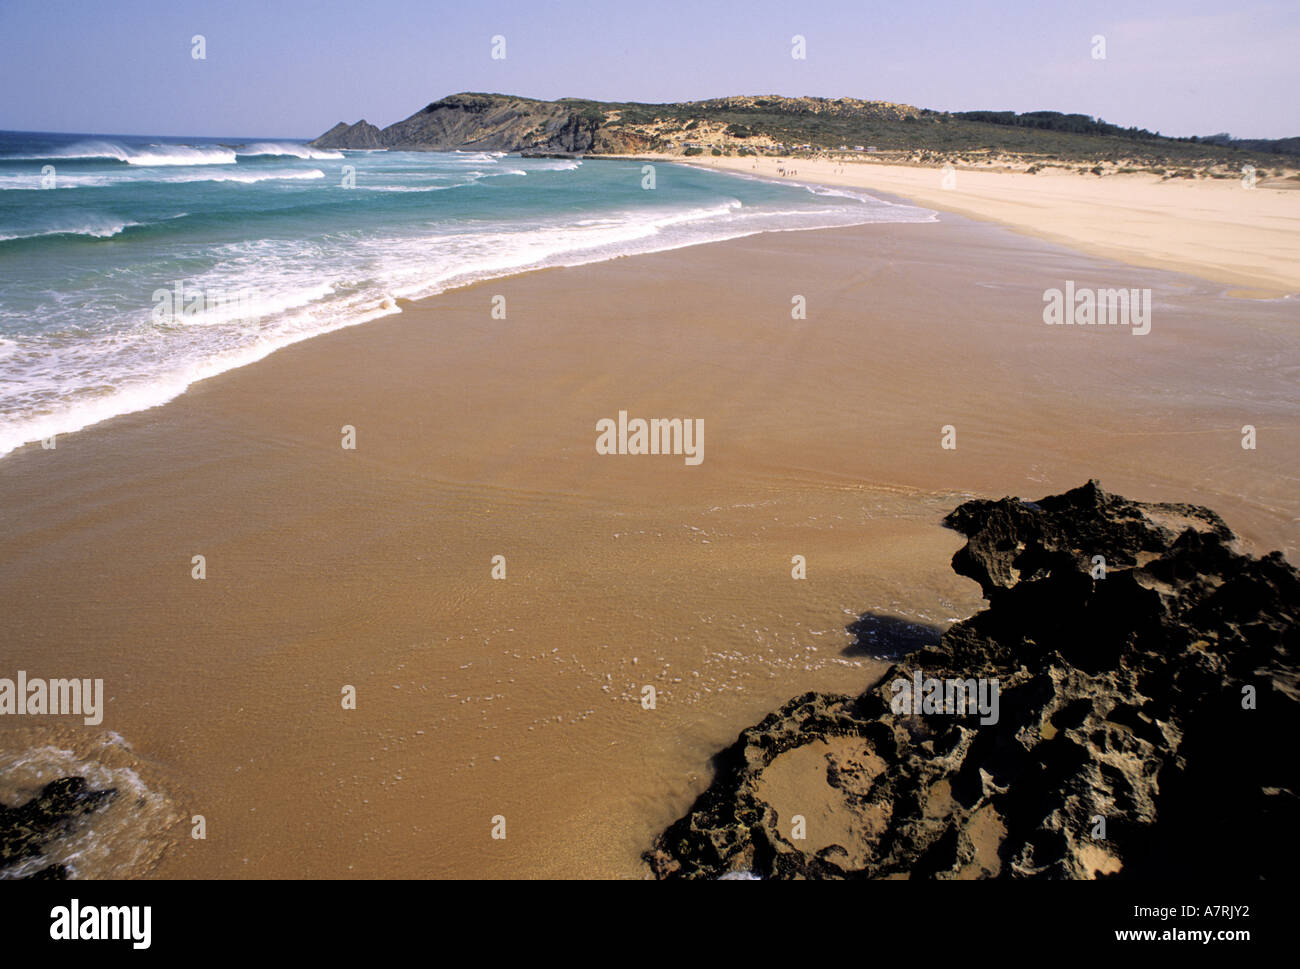 Portugal, Algarve Province, preserved site in Cape Saint Vincent area - Stock Image